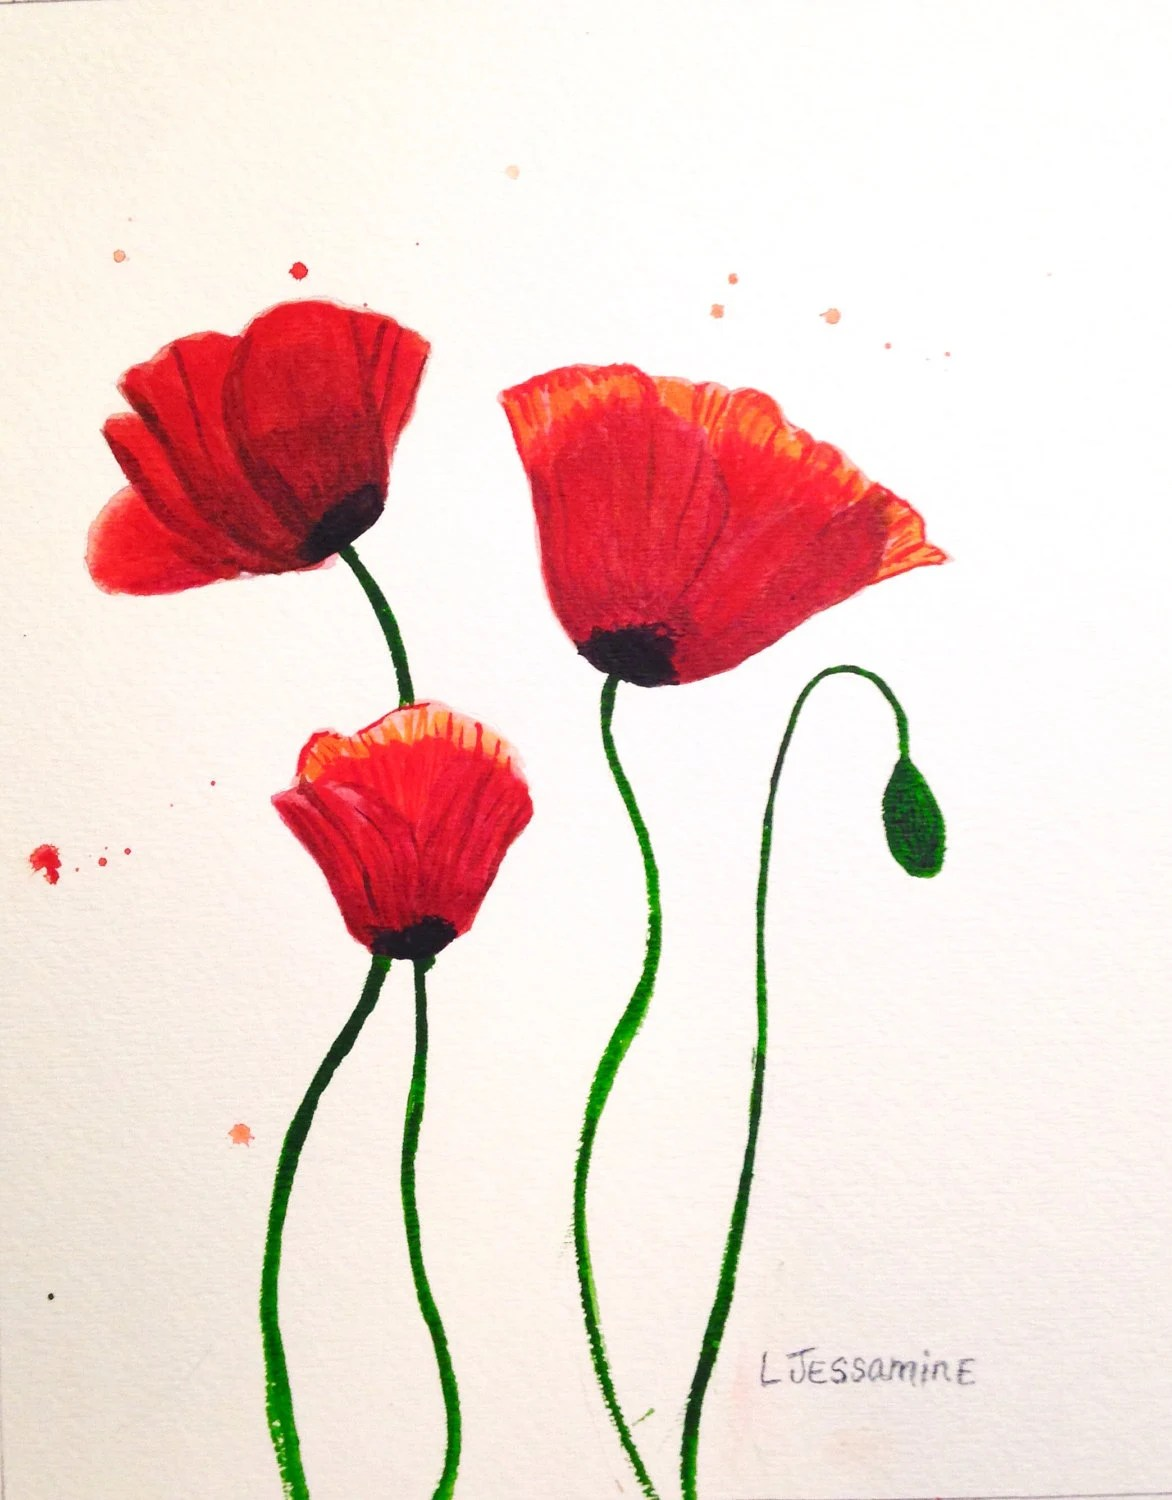 Red Poppy Original Watercolor Painting  Flower painting  Red Flowers     Red Poppy Original Watercolor Painting  Flower painting  Red Flowers  Wall  Art  Red and White  Poppy Flower  Poppy Flowers  8x10